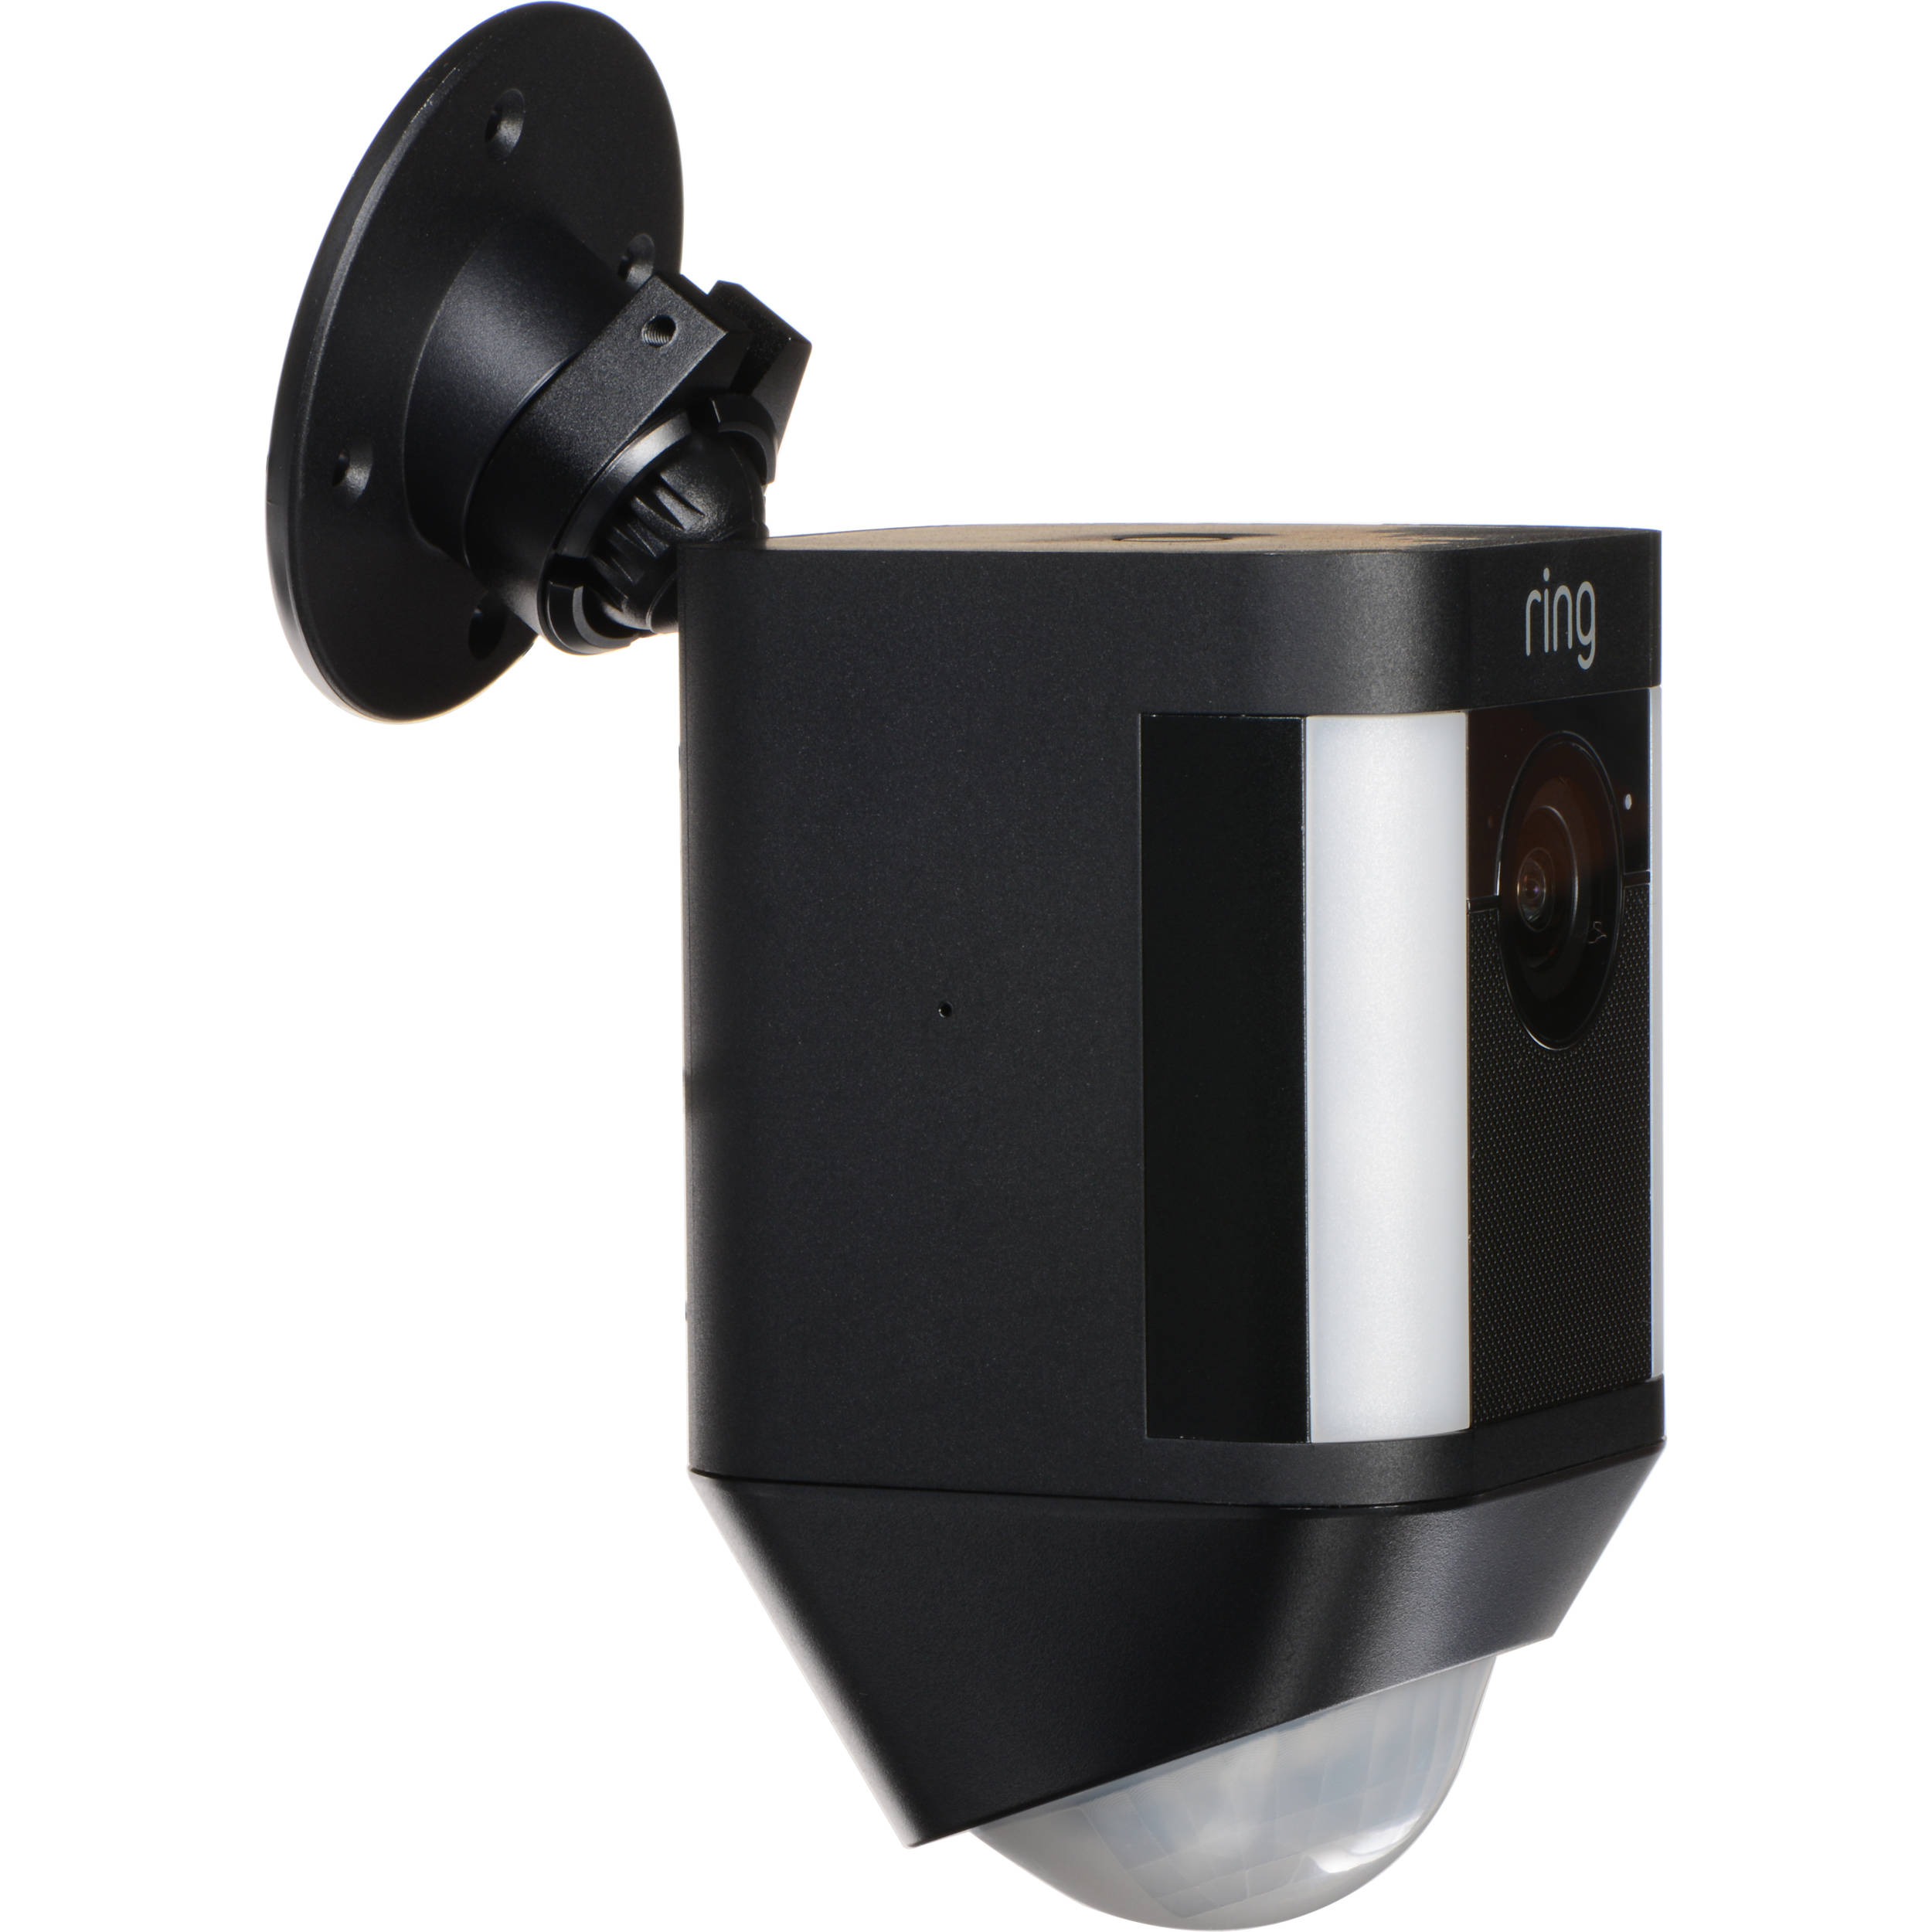 Ring spotlight cam 1080p outdoor wi fi camera 8sb1s7 ben0 bh ring spotlight cam 1080p outdoor wi fi camera with night vision battery powered arubaitofo Images